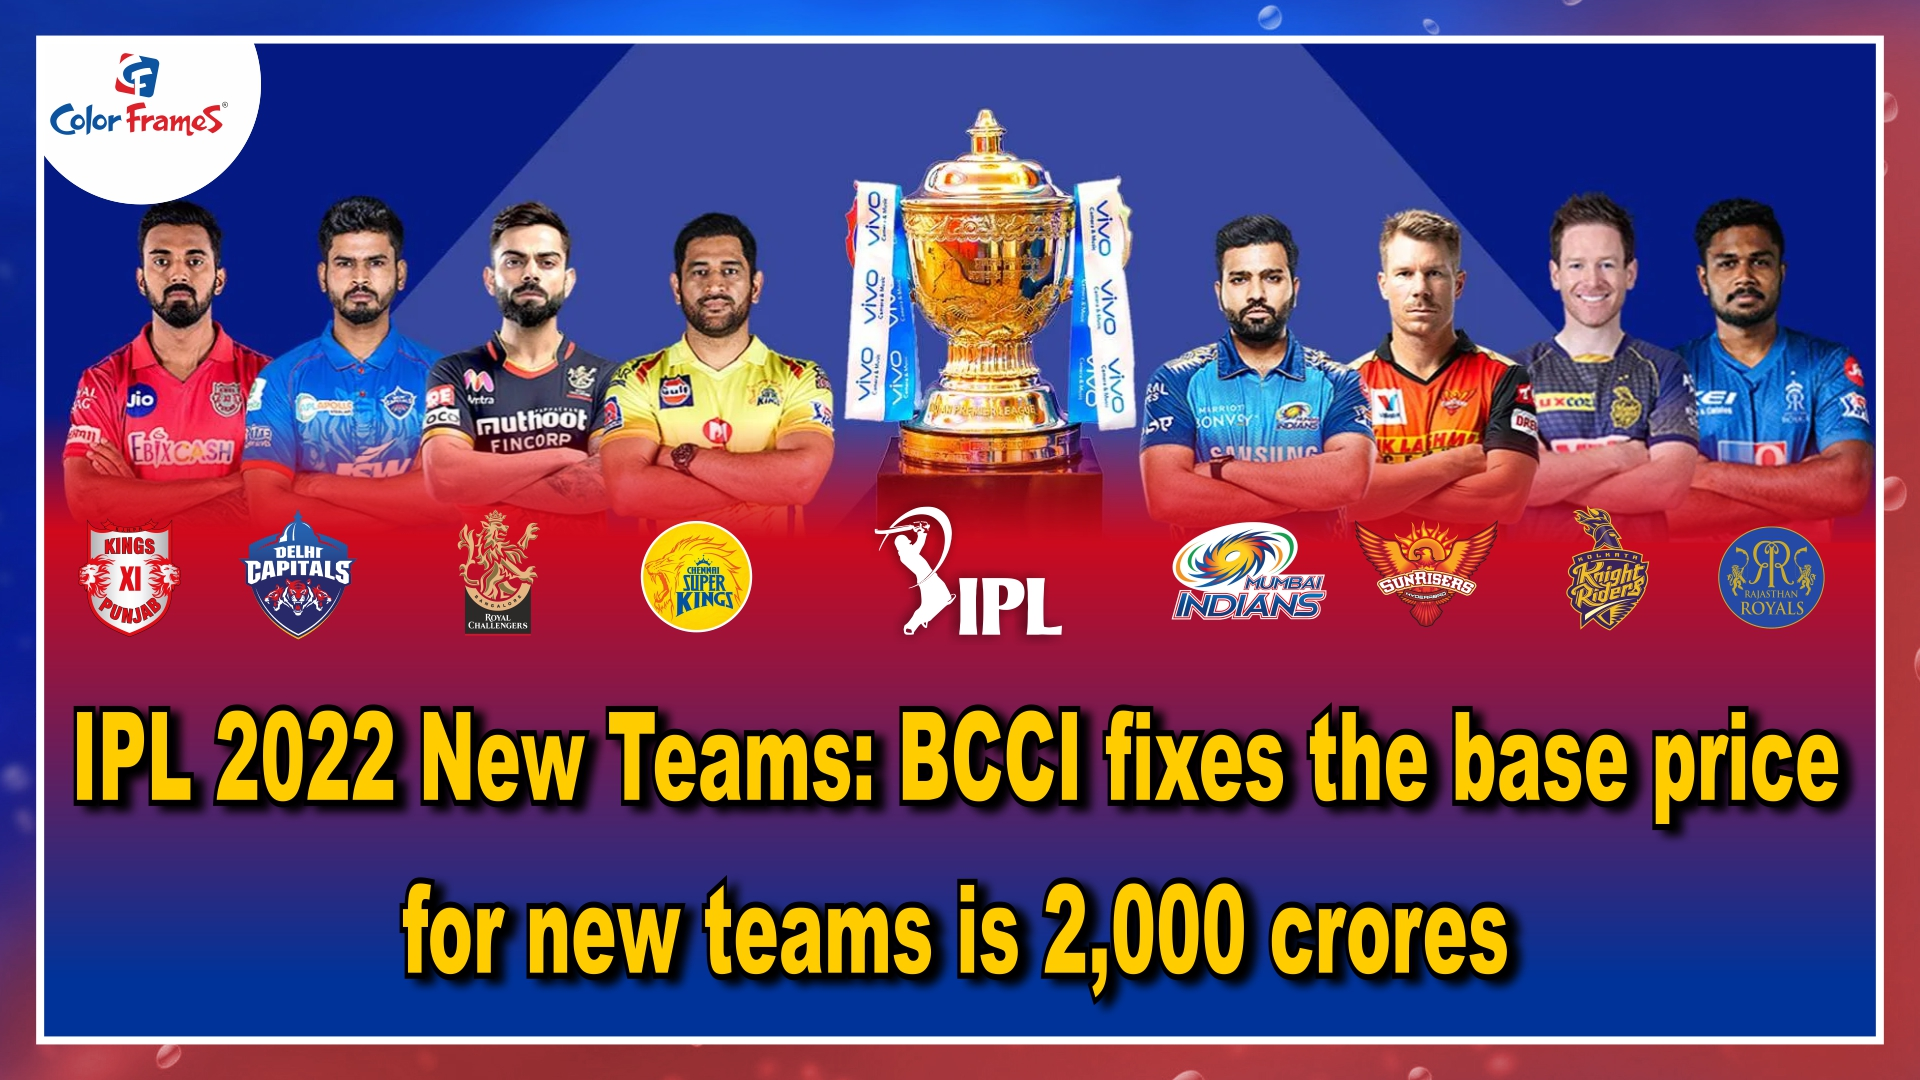 IPL 2022 New Teams: BCCI fixes the base price for new teams is 2,000 crores